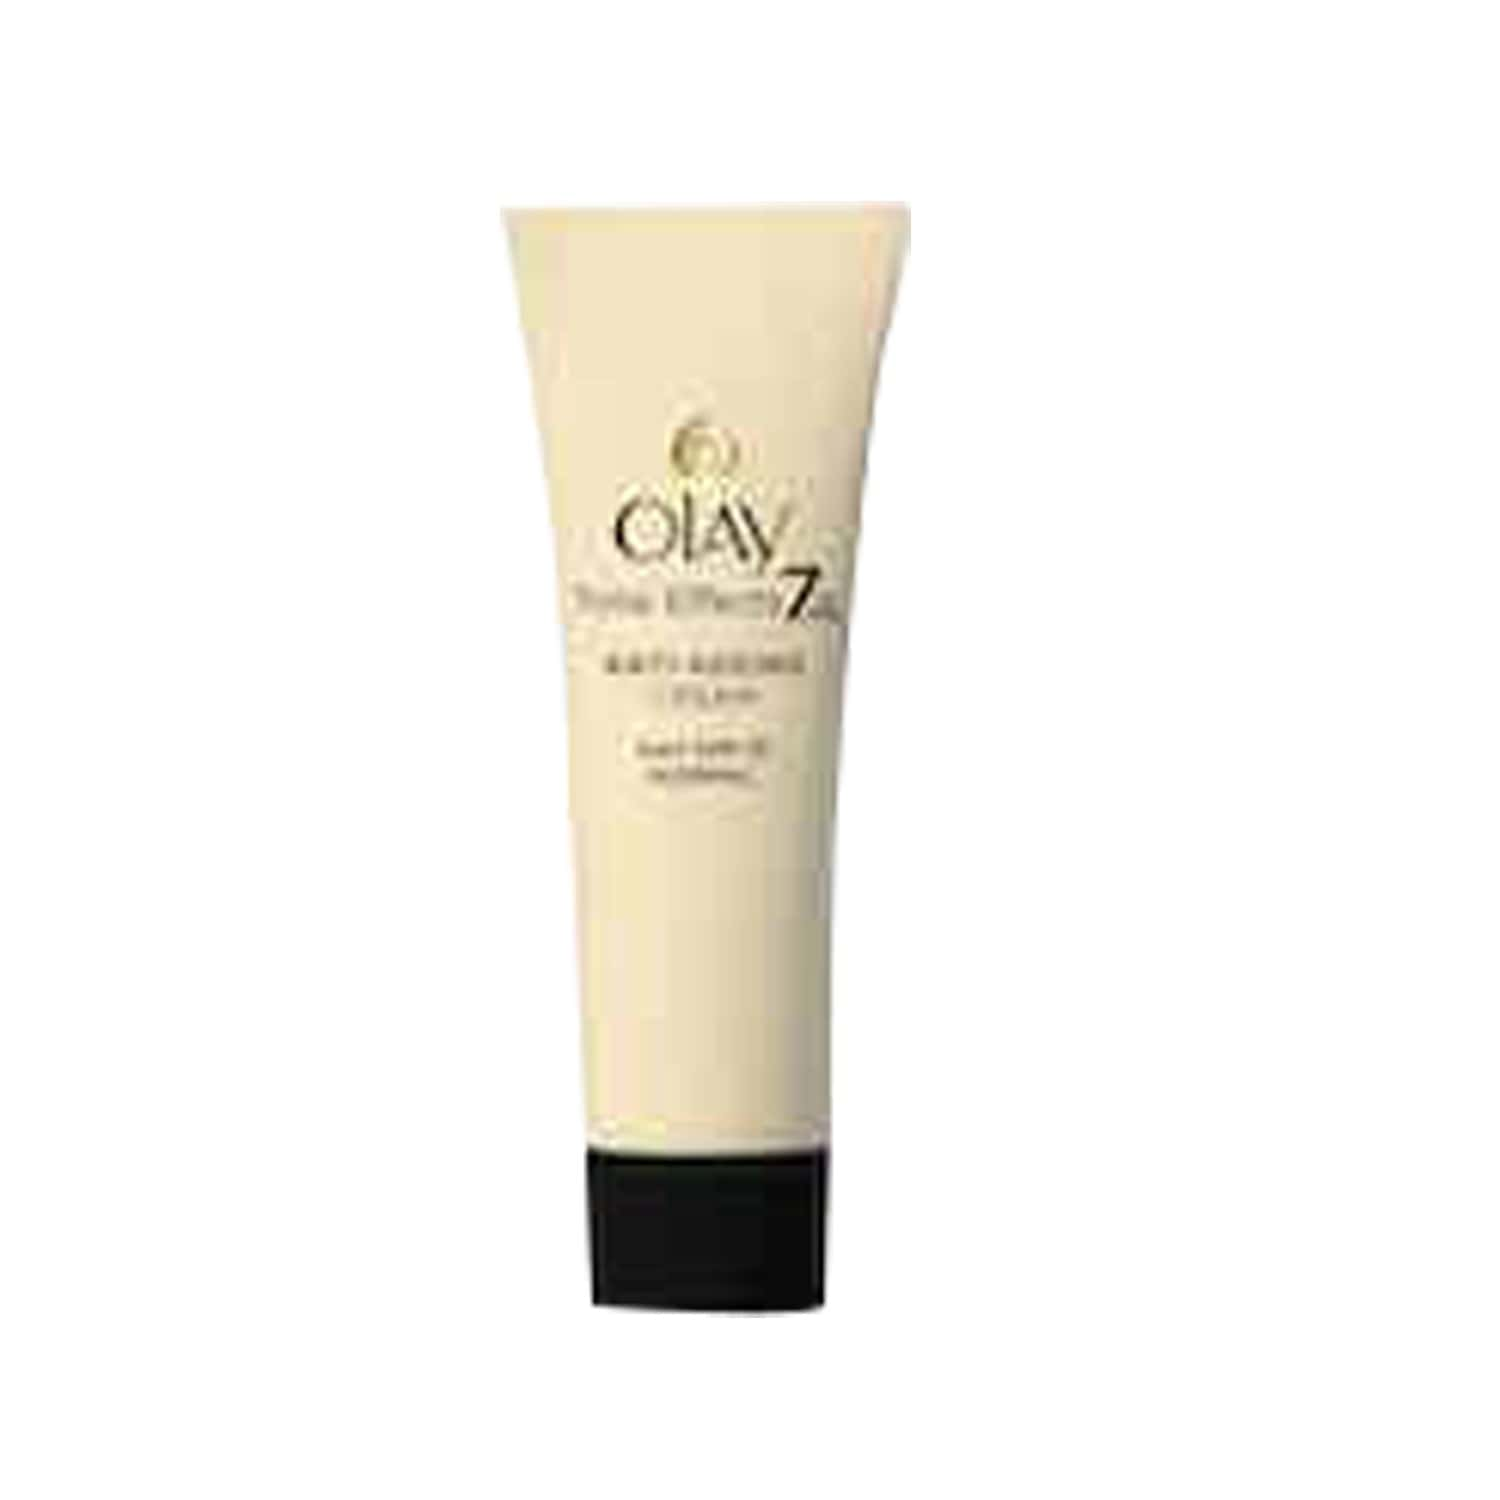 Olay Total Effects 7 In 1 Anti Ageing Skin Cream (moisturizer) Normal Spf15 8 Gm